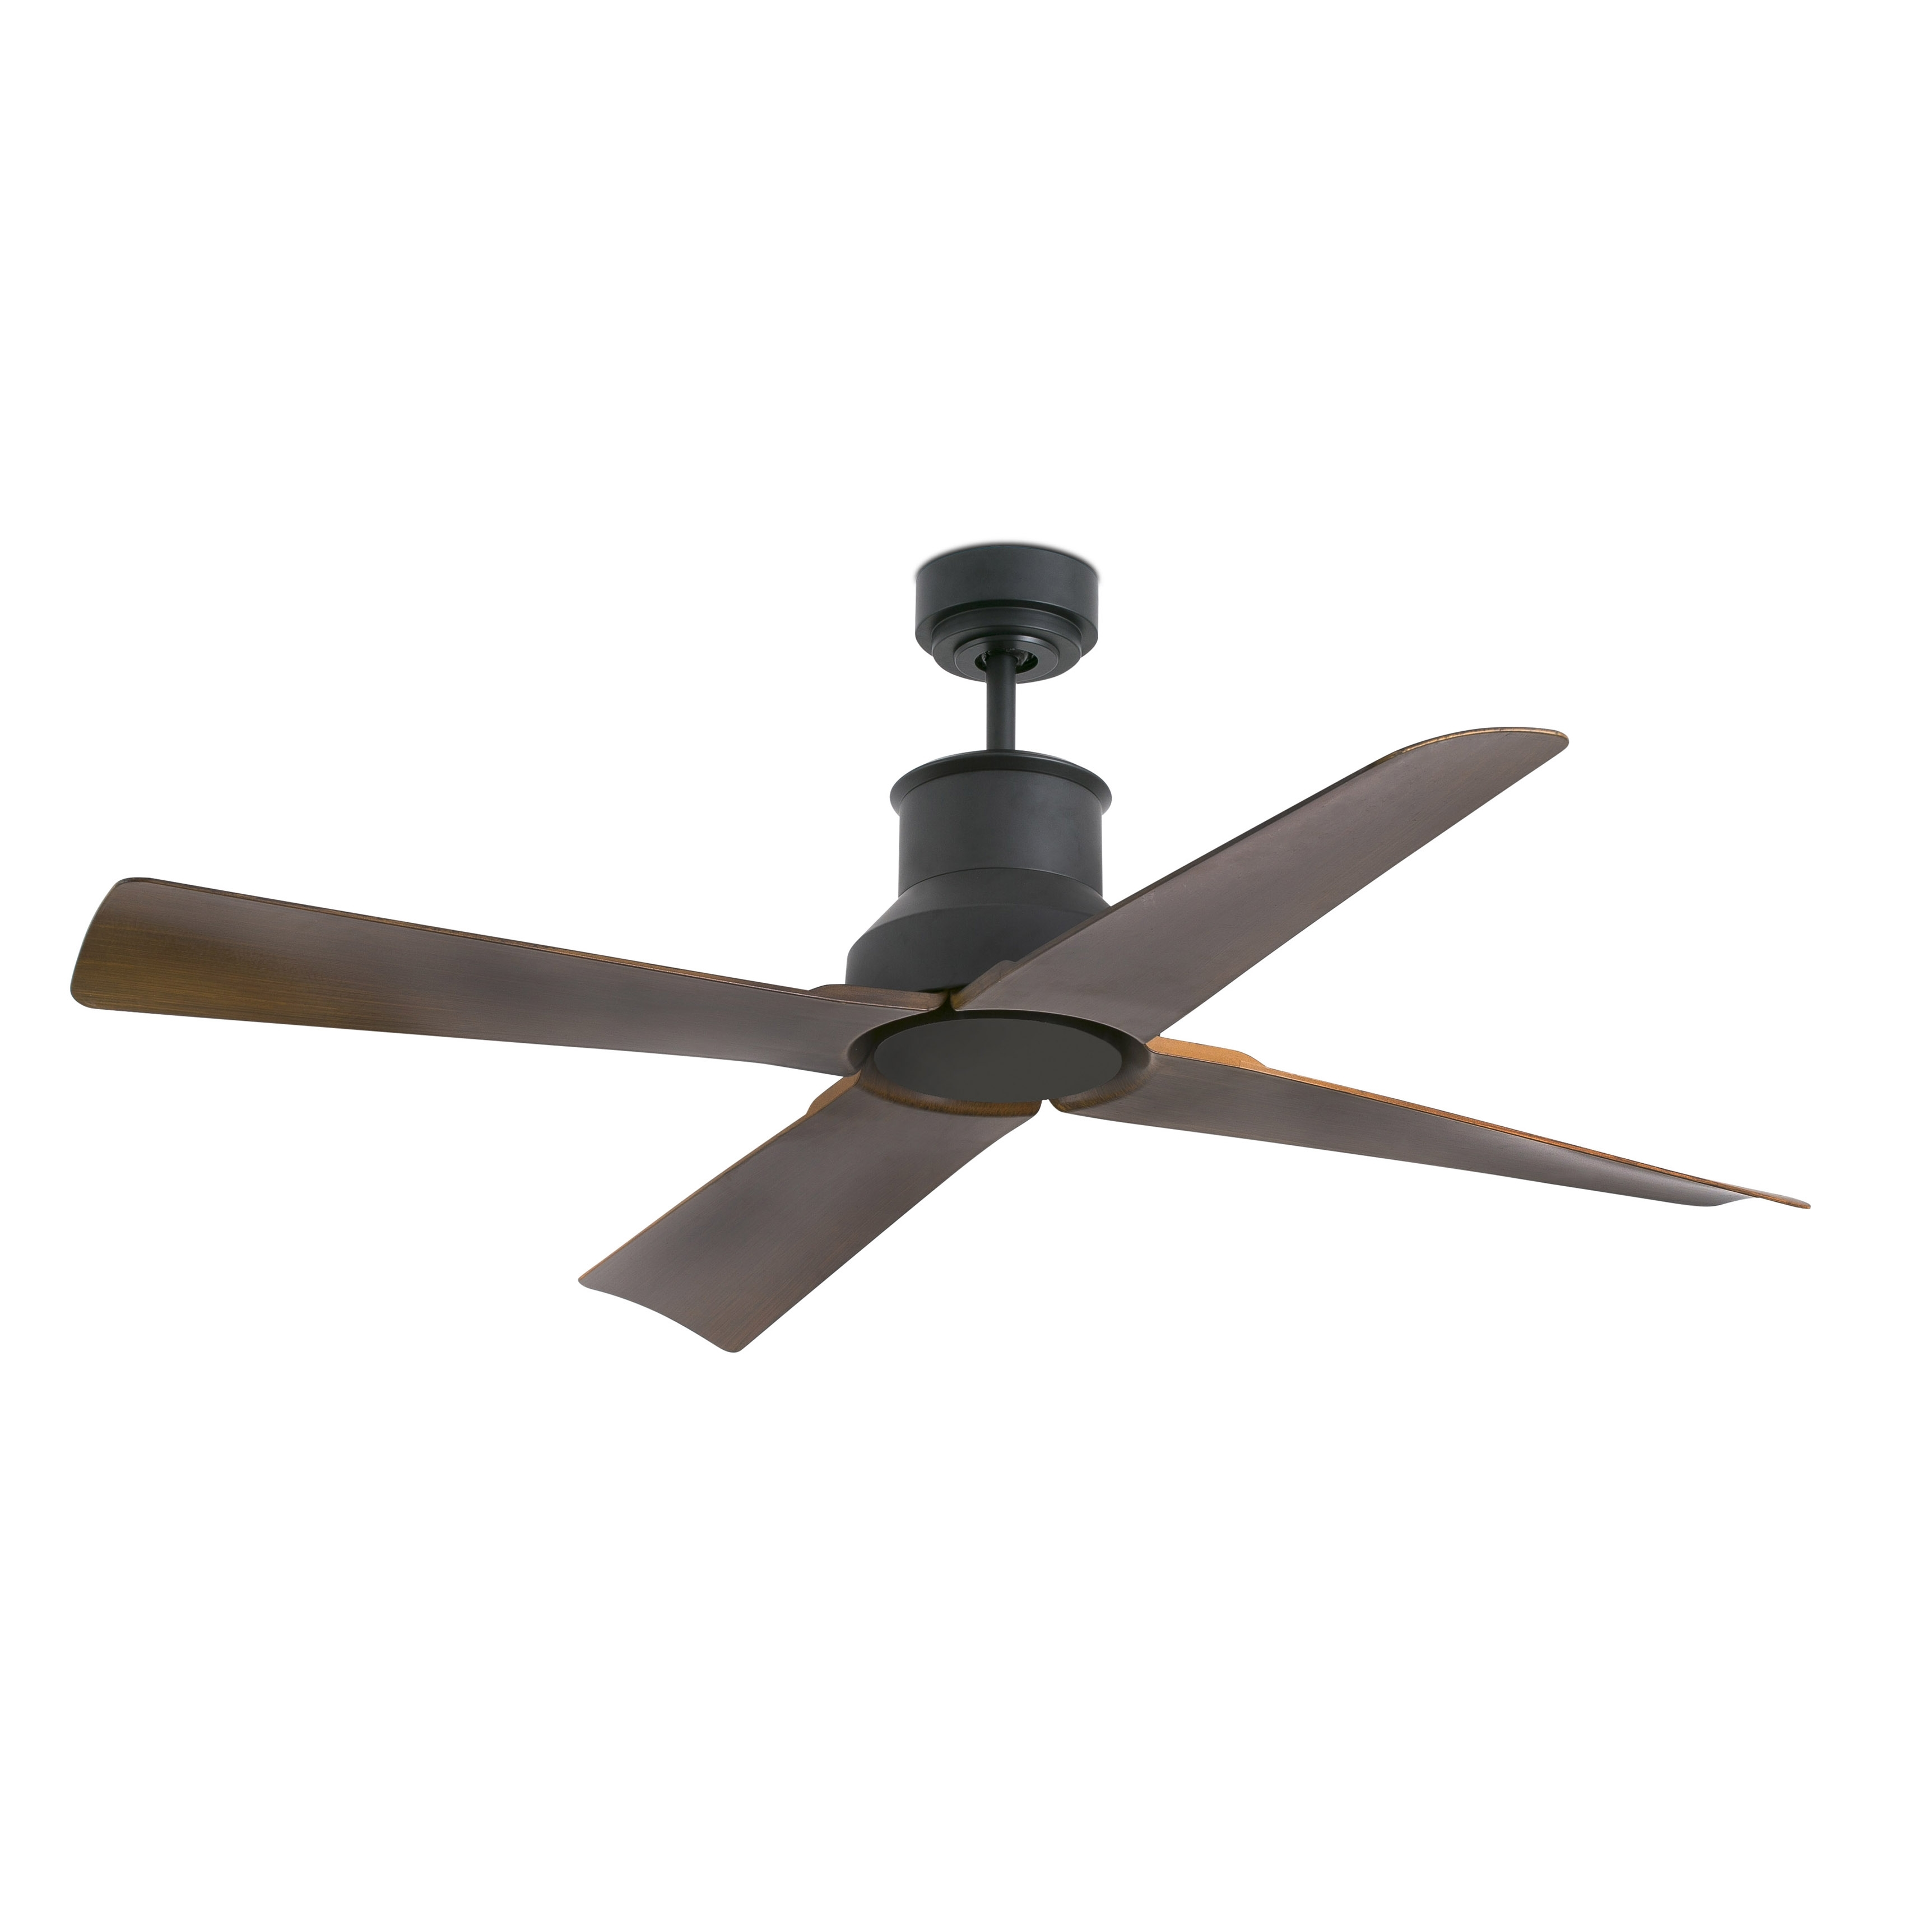 High Volume Outdoor Ceiling Fans For Newest Winche Brown Ceiling Fan With Dc Motor – Faro (View 5 of 20)